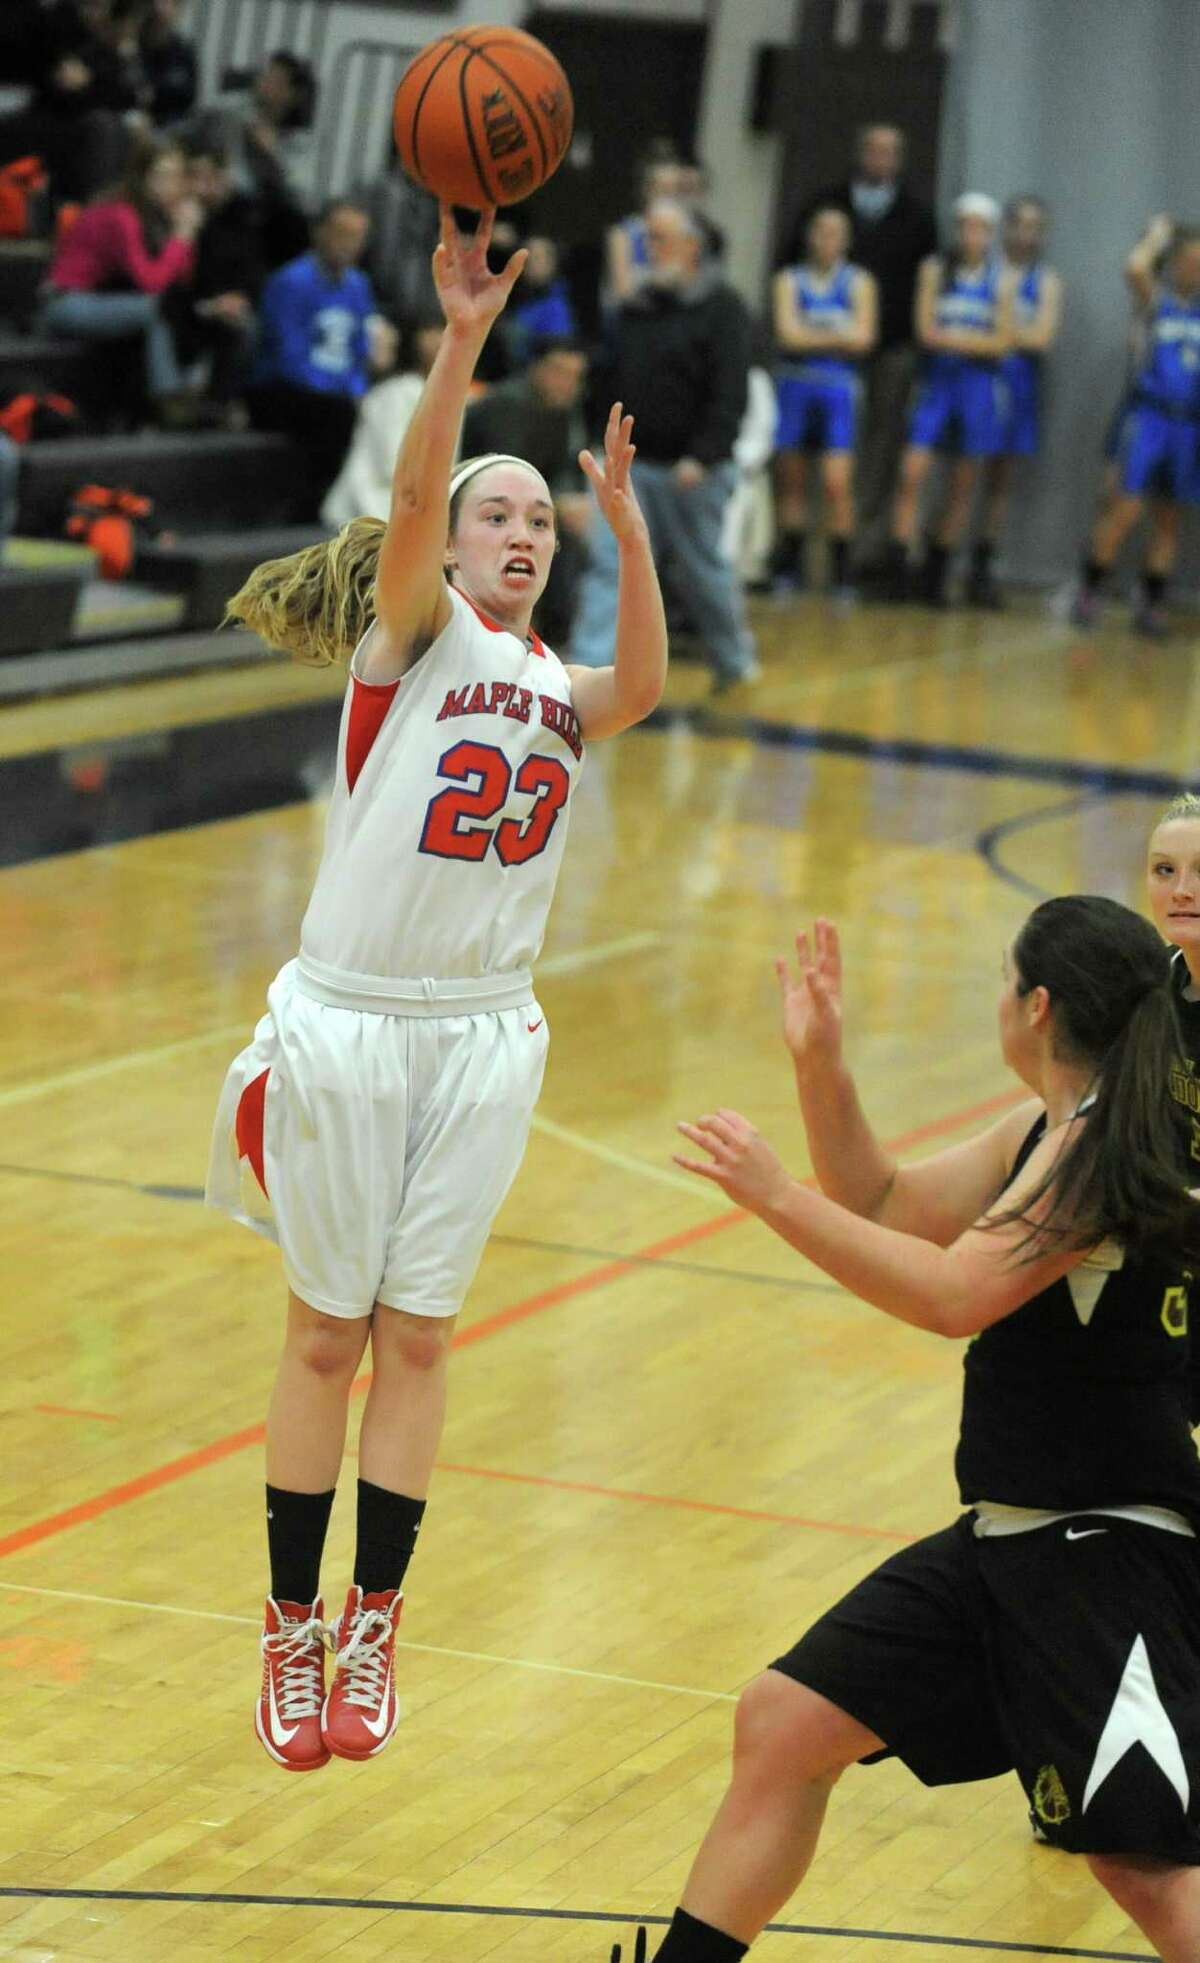 Maple Hills' Lindsay Mannion goes up for three points during a basketball game against Berne Knox at Mohonasen High School on Friday Dec. 28, 2012 in Albany, N.Y. (Lori Van Buren / Times Union)